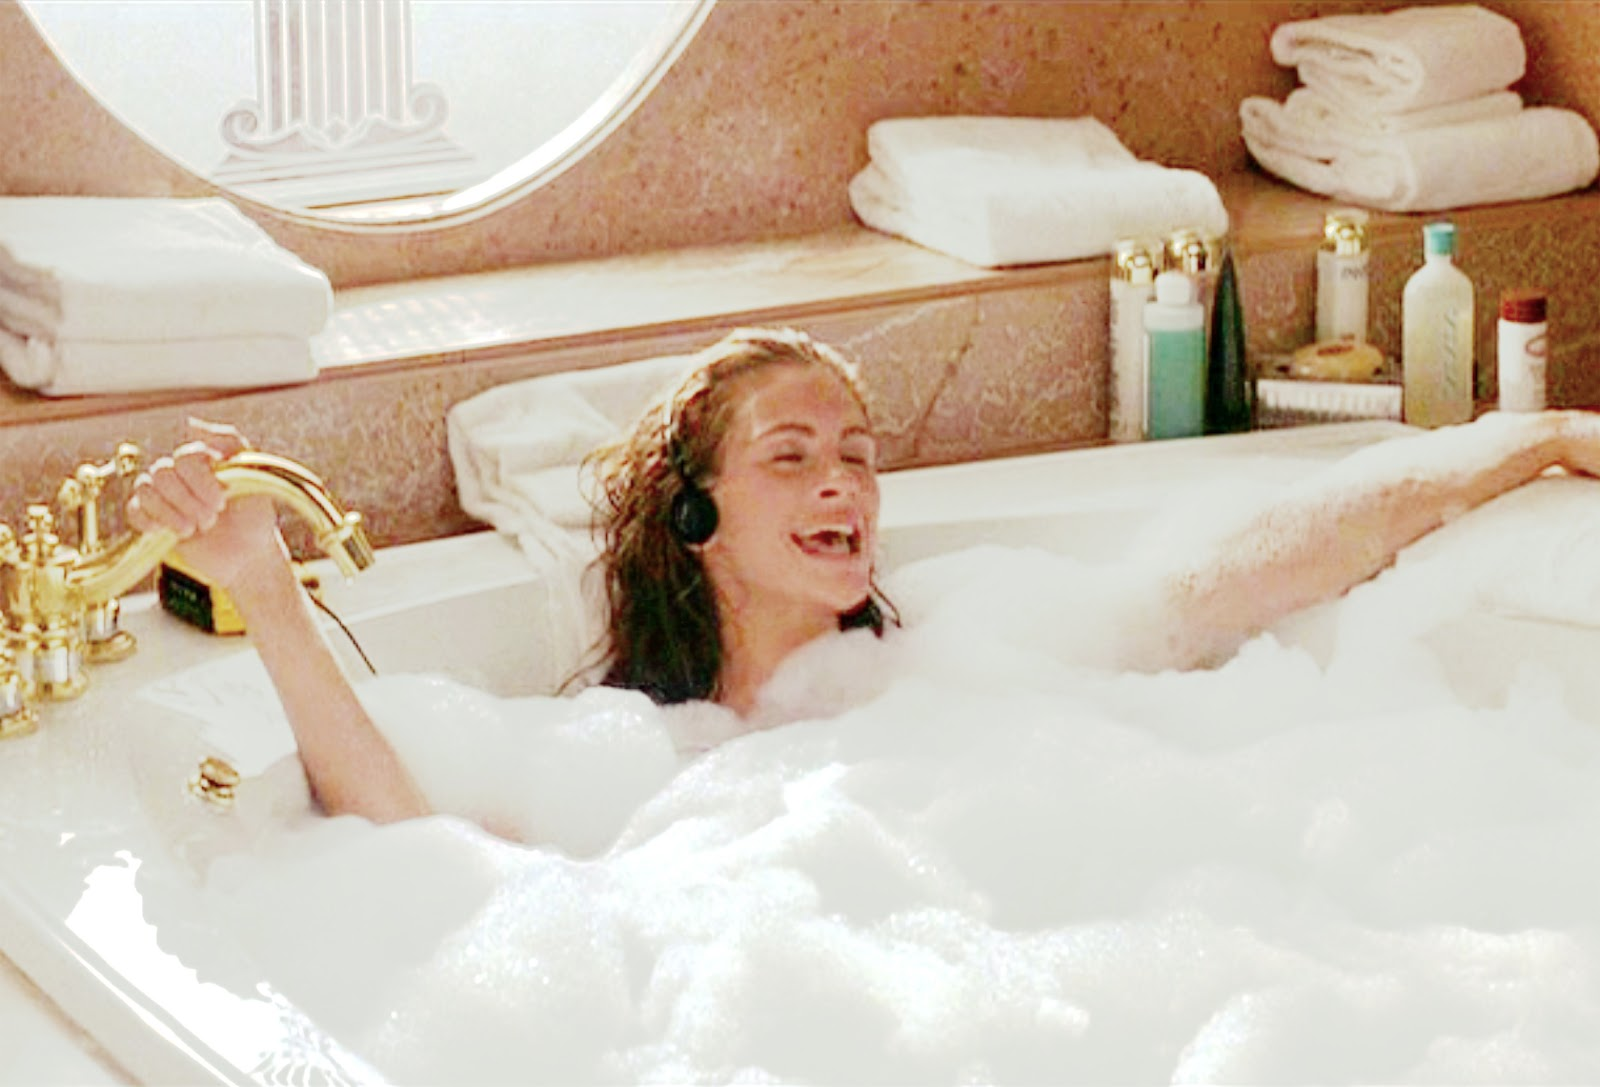 7 reasons taking a bath is way superior to a shower